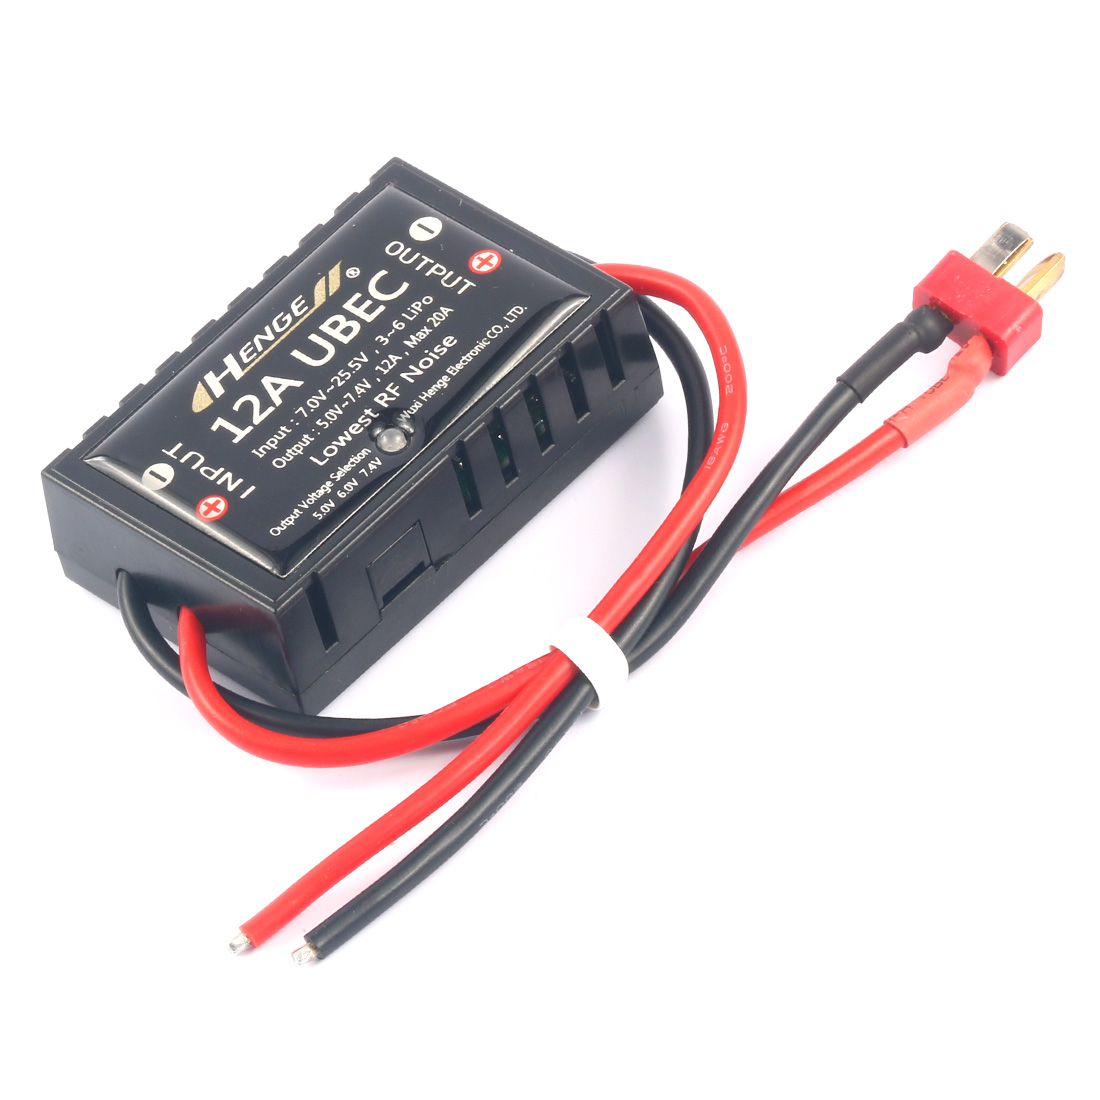 JMT 12A UBEC Switch Mode BEC Voltage Stabilizer Output 5V /6V / 7.4V 12A Max 20A Input 3S-6S Lipo 7V-25.5V for RC Drone Aircraft nylon pa66 12a door interlock switch black 5v 50 piece pack